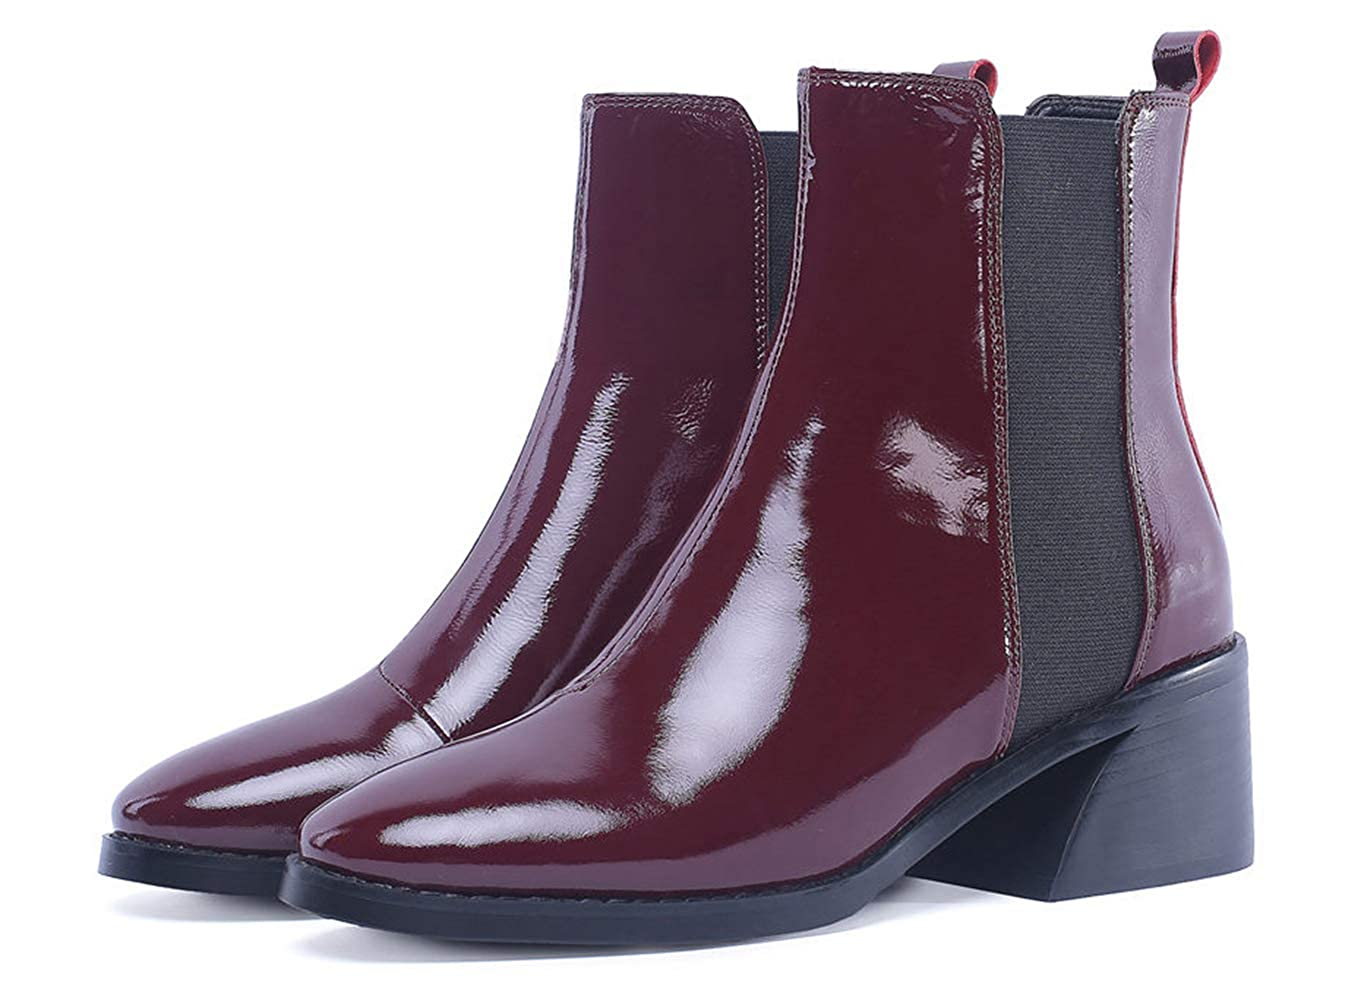 Wine Red LVYING Womens Patent Leather Ankle Boots Winter Square Hoof High Heel Round Toe Outdoor Short Booties